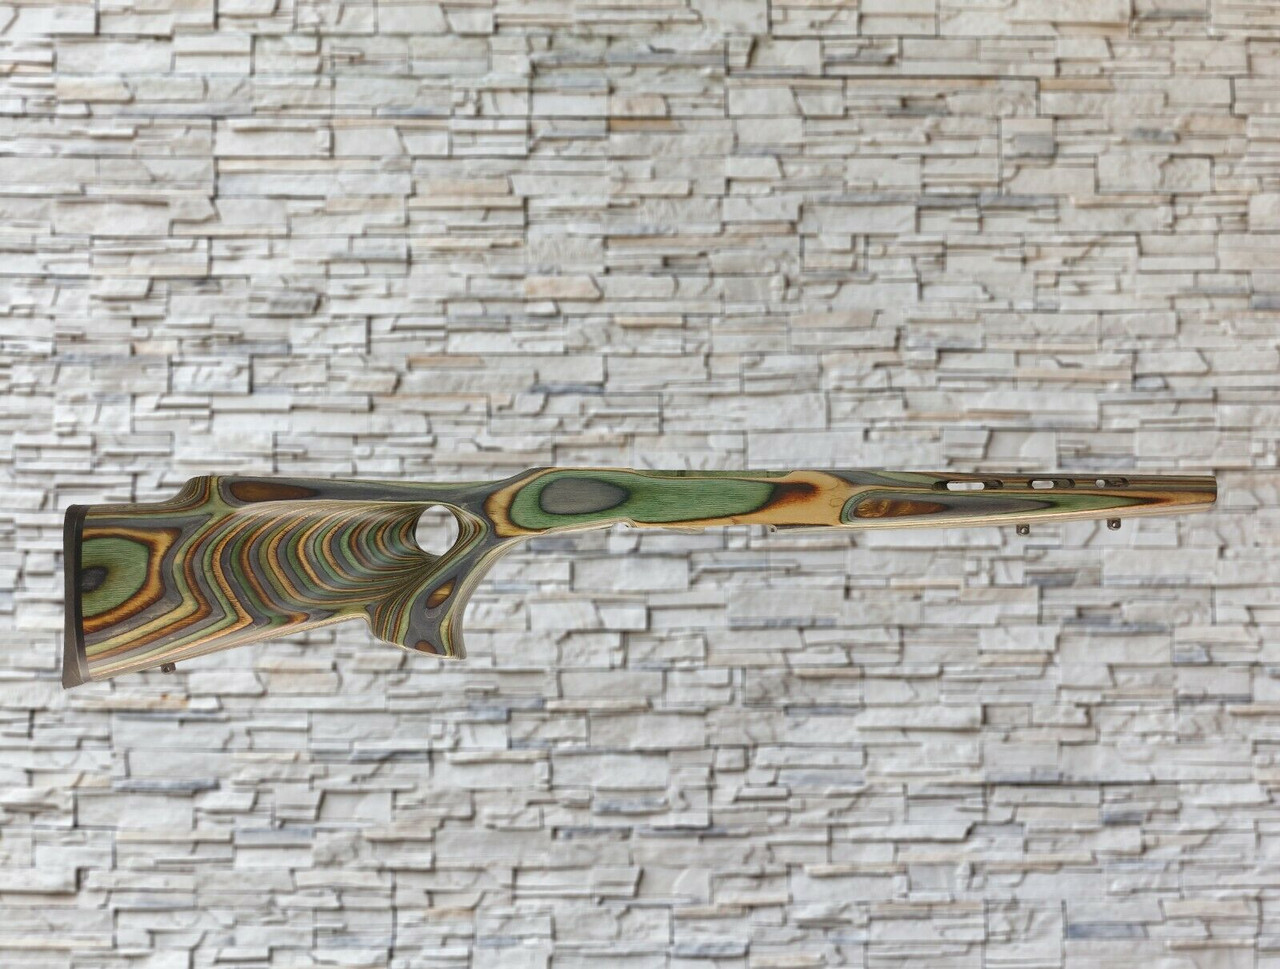 Boyds Featherweight Wood Stock Camo For Savage A-17/A22 WMR Bull Barrel